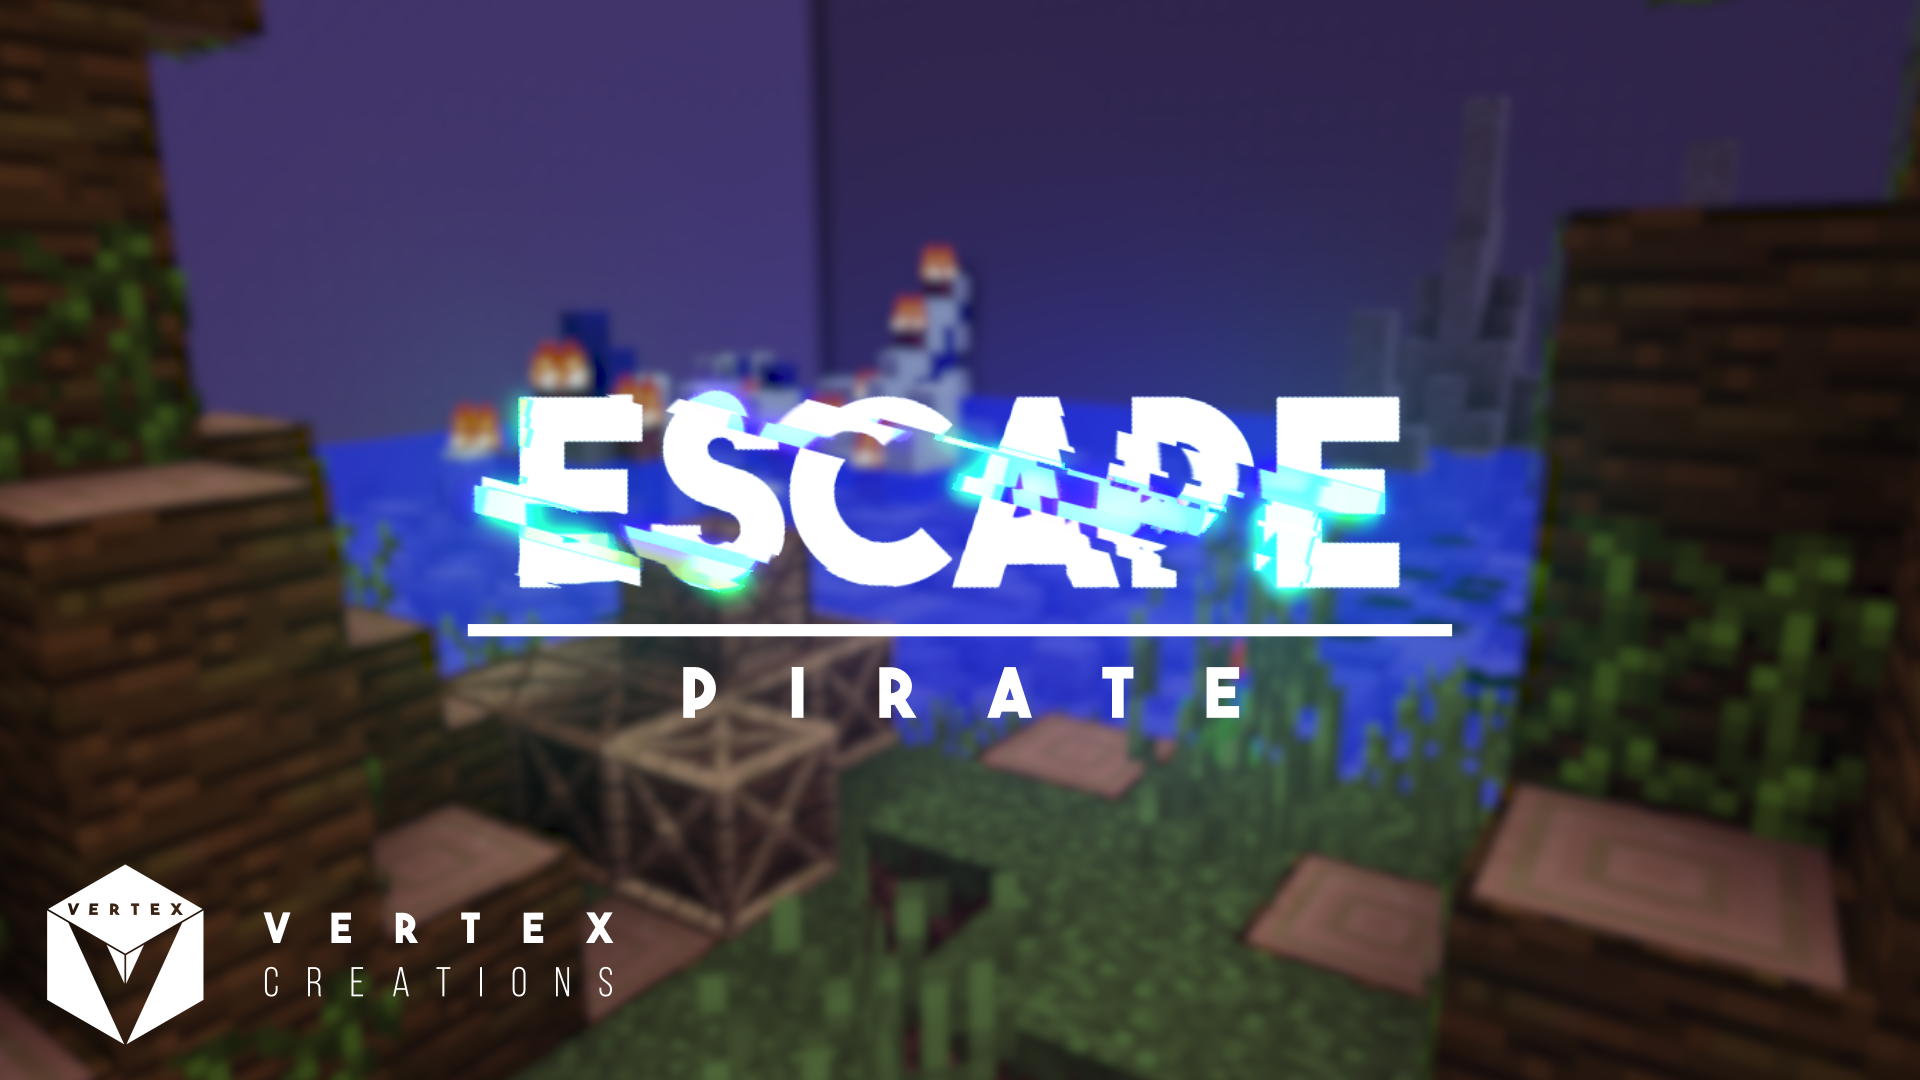 Escape: Pirate